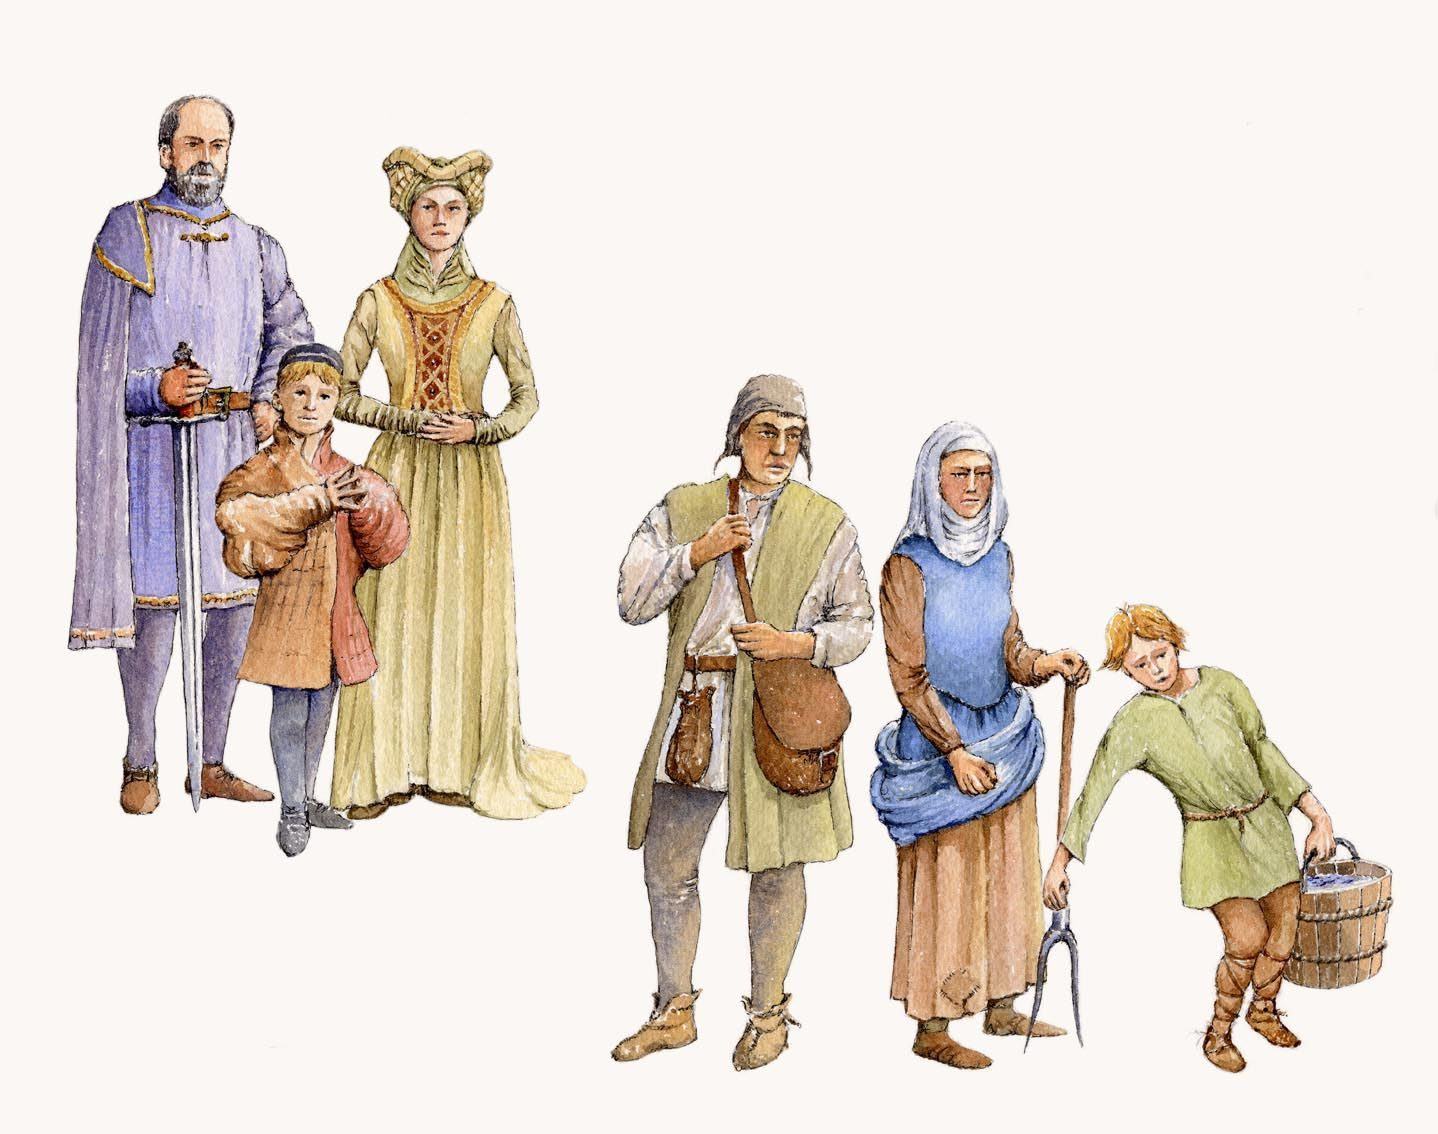 medieval society While feudalism developed in europe in about 900 ad after the fall of rome, feudalism also developed in japan and was organized in a similar manner.